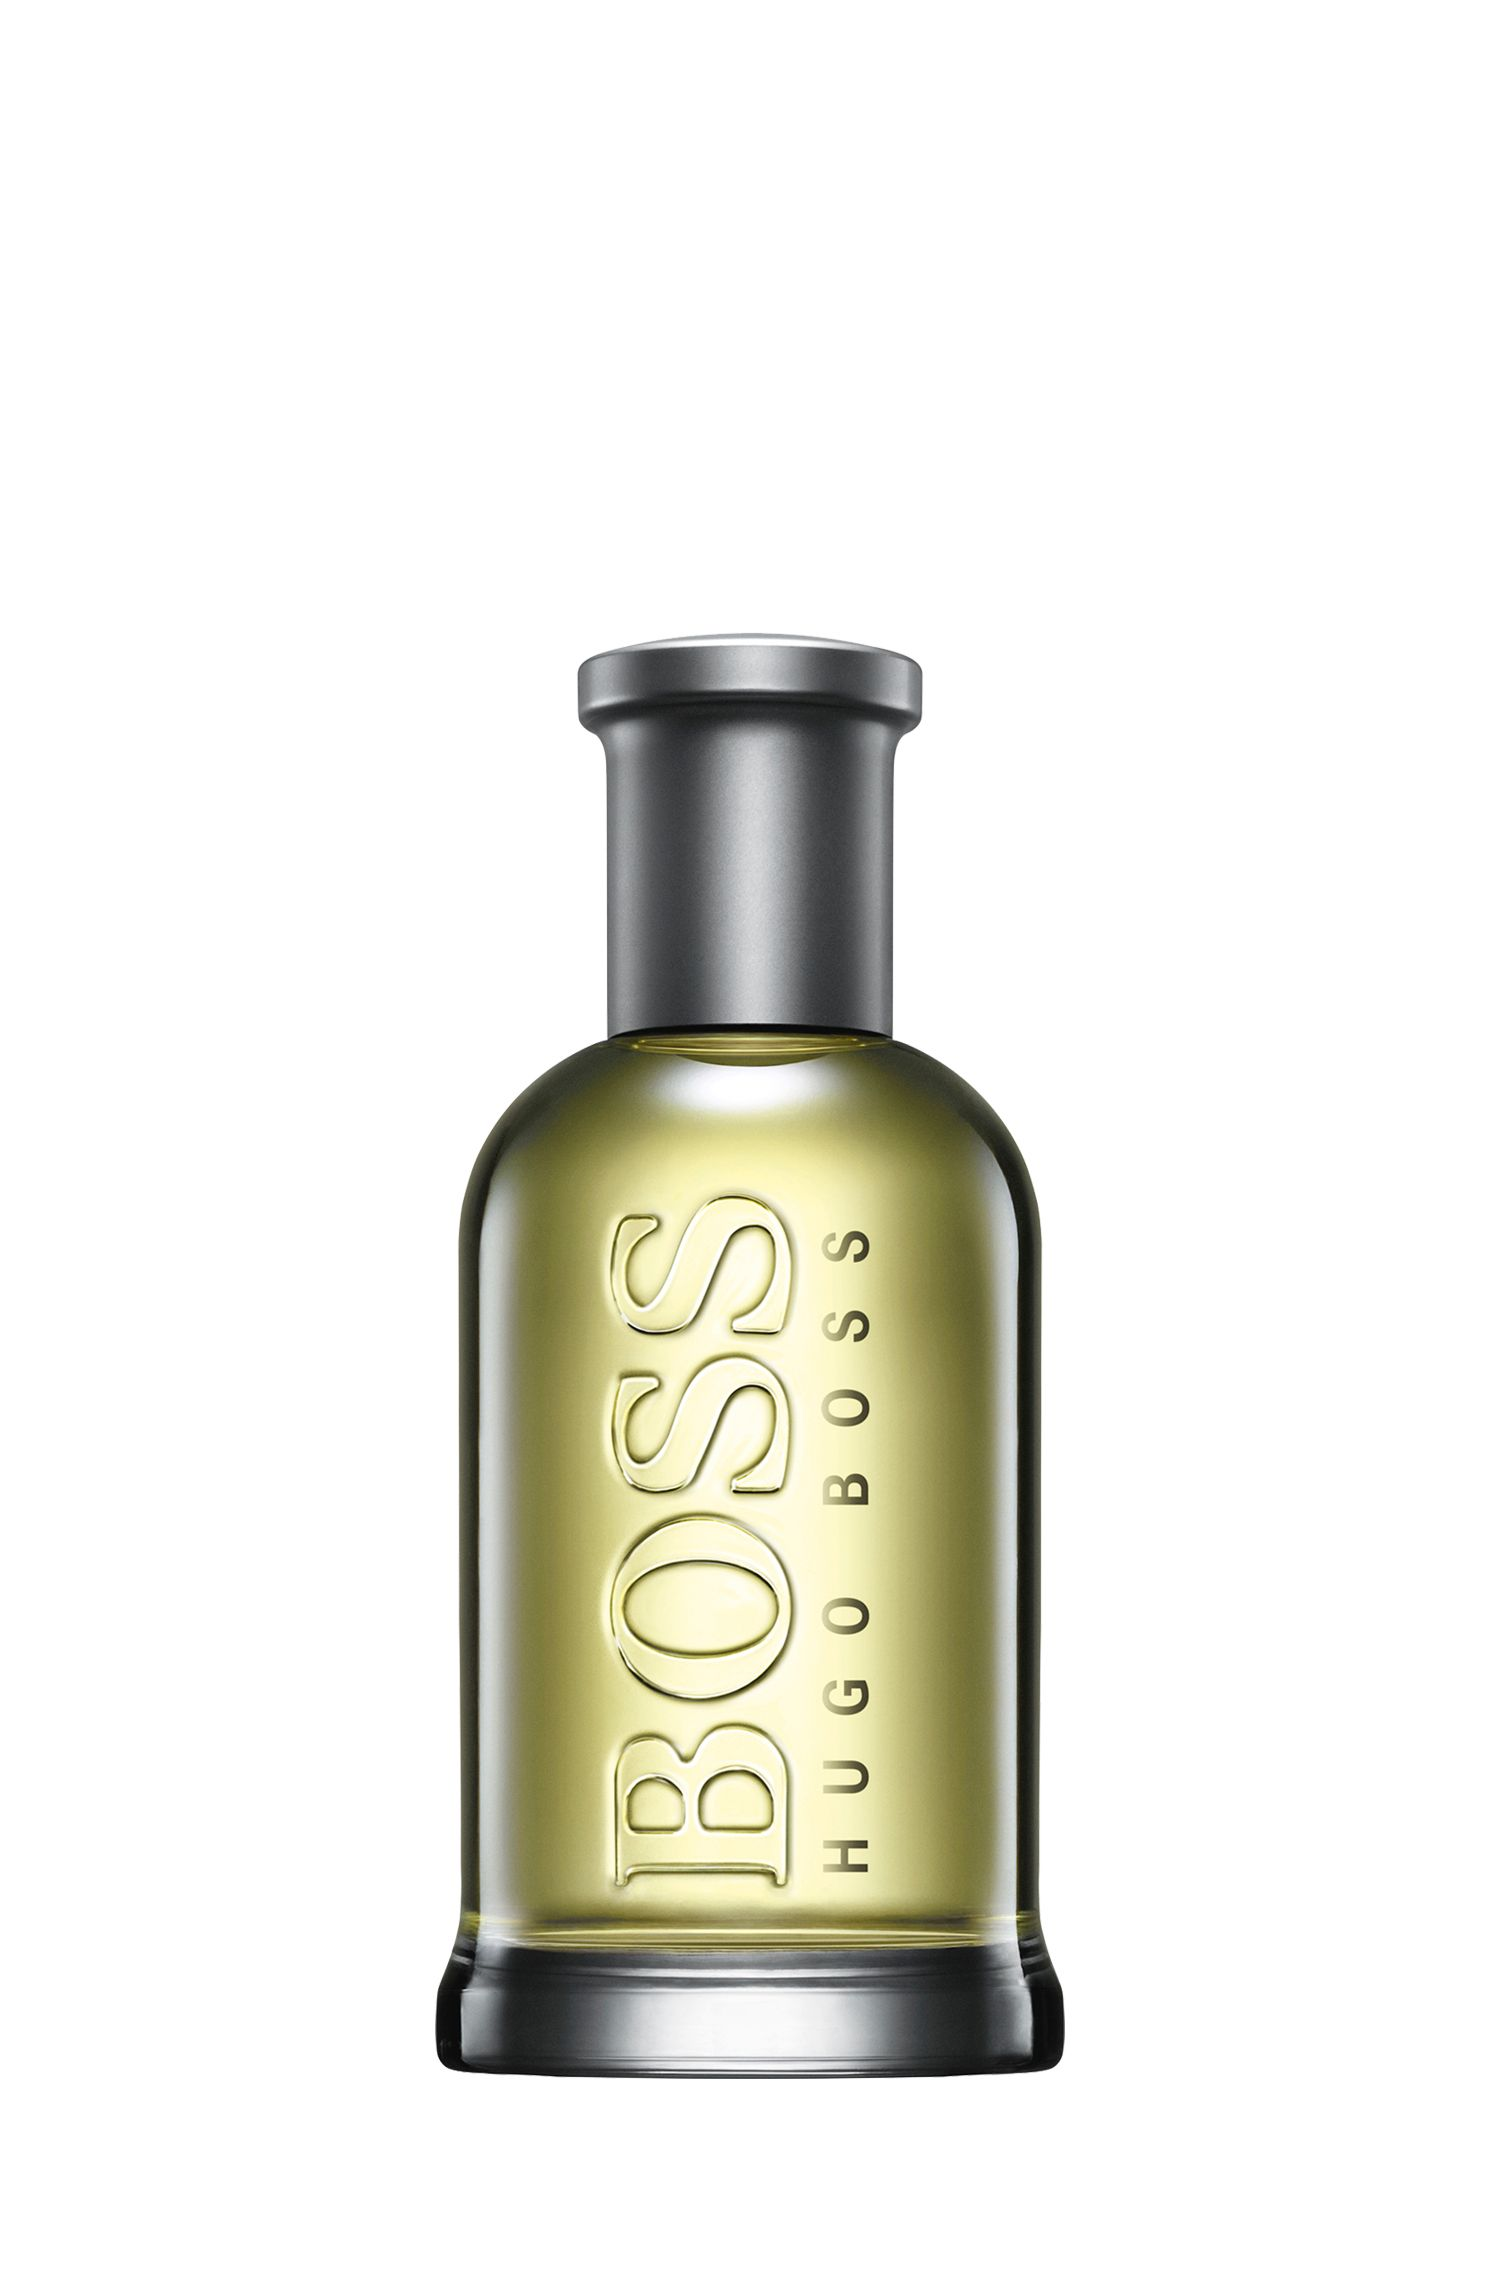 Eau de toilette BOSS Bottled de 50 ml